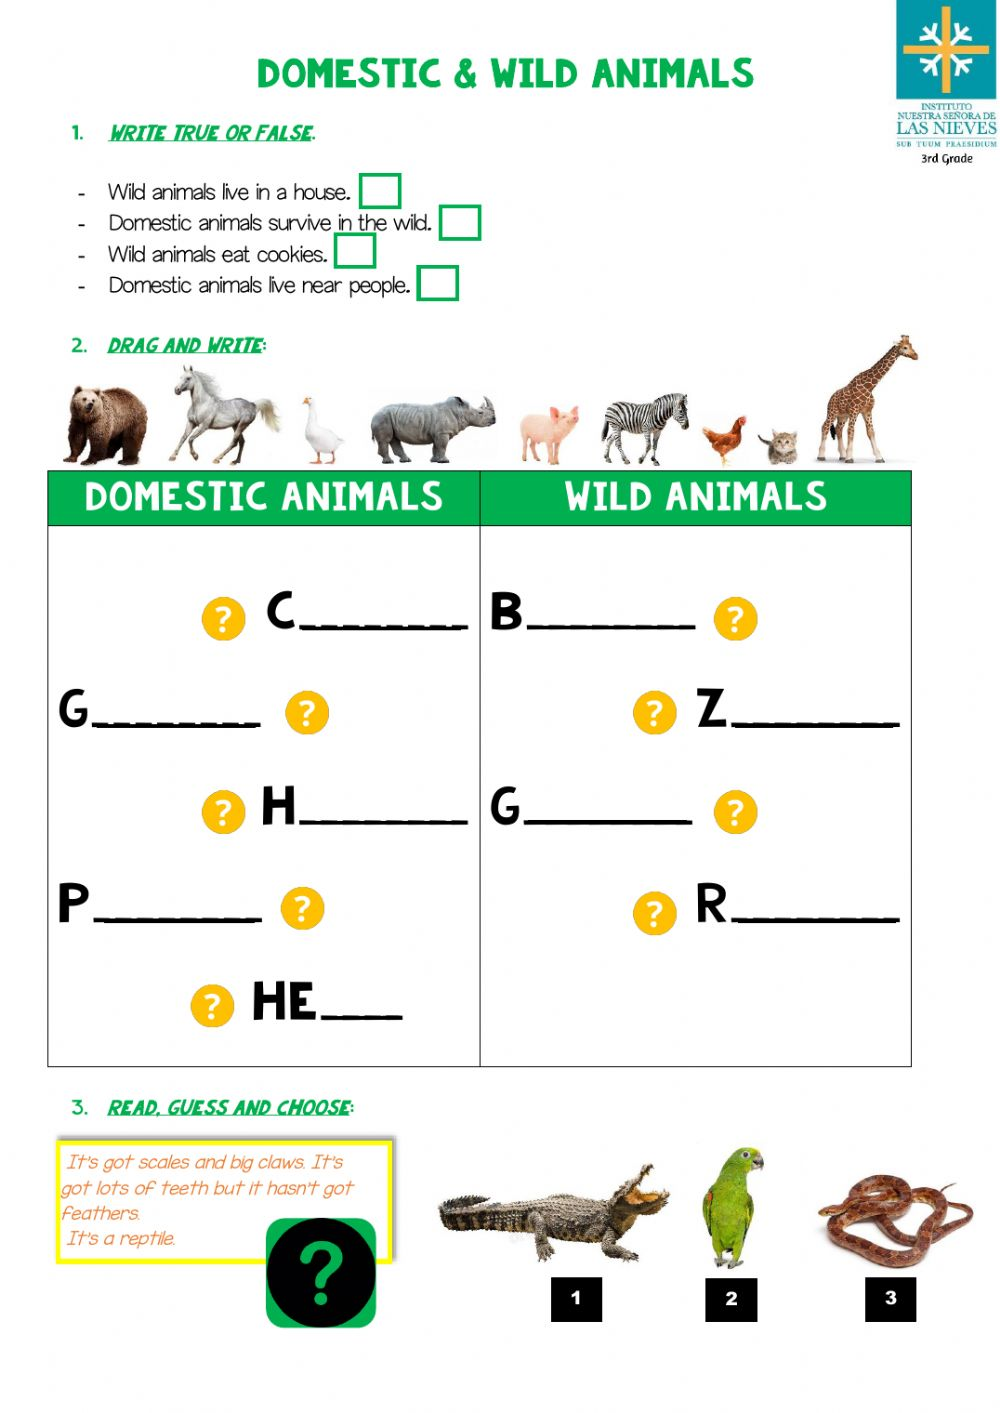 medium resolution of Domestic and Wild Animals exercise